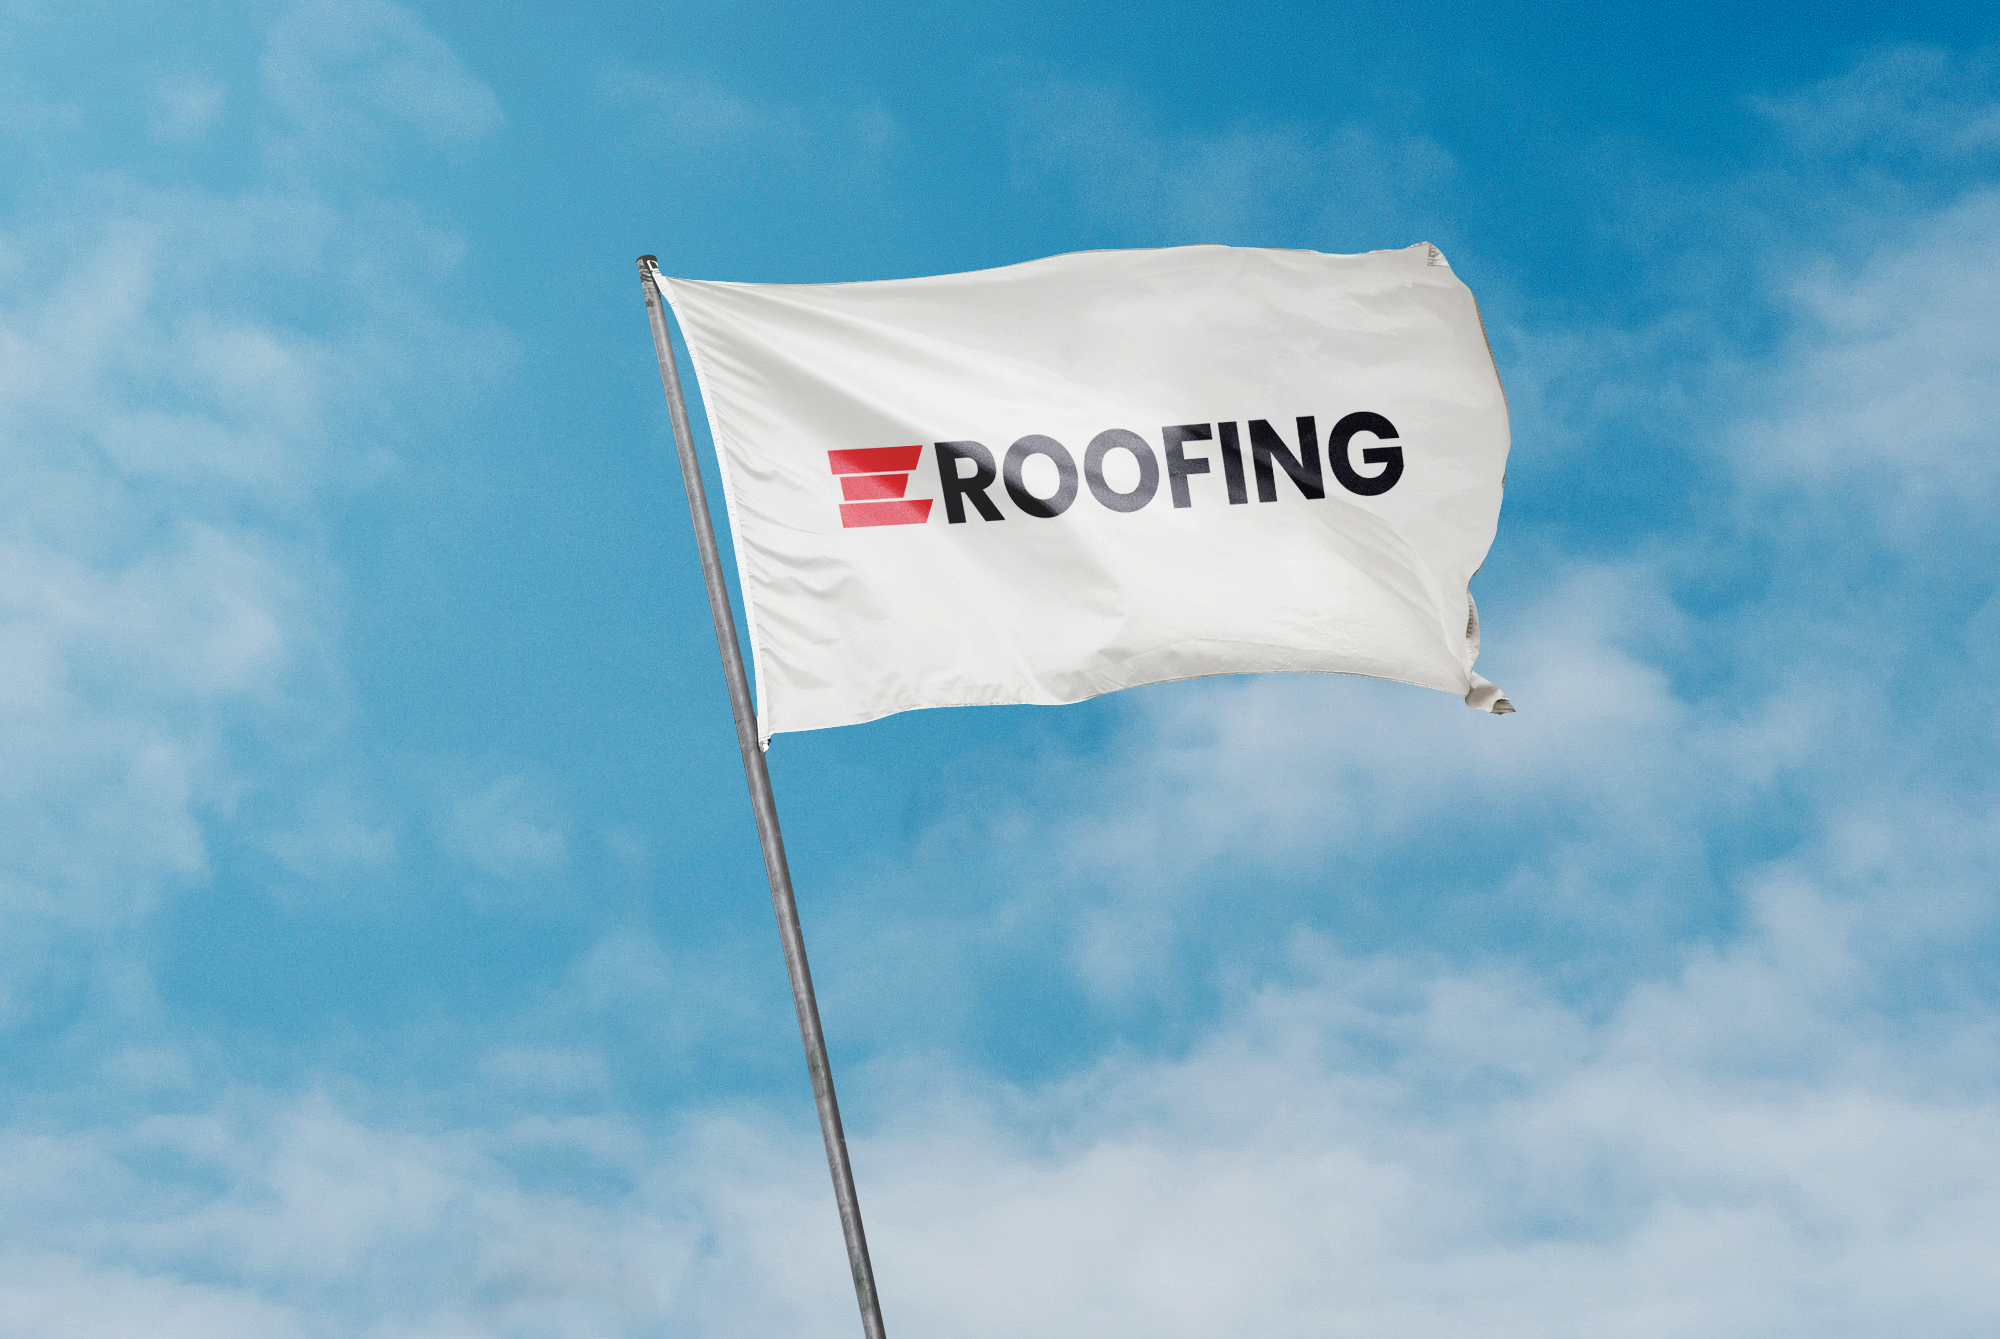 5 Reasons To Choose ERoofing